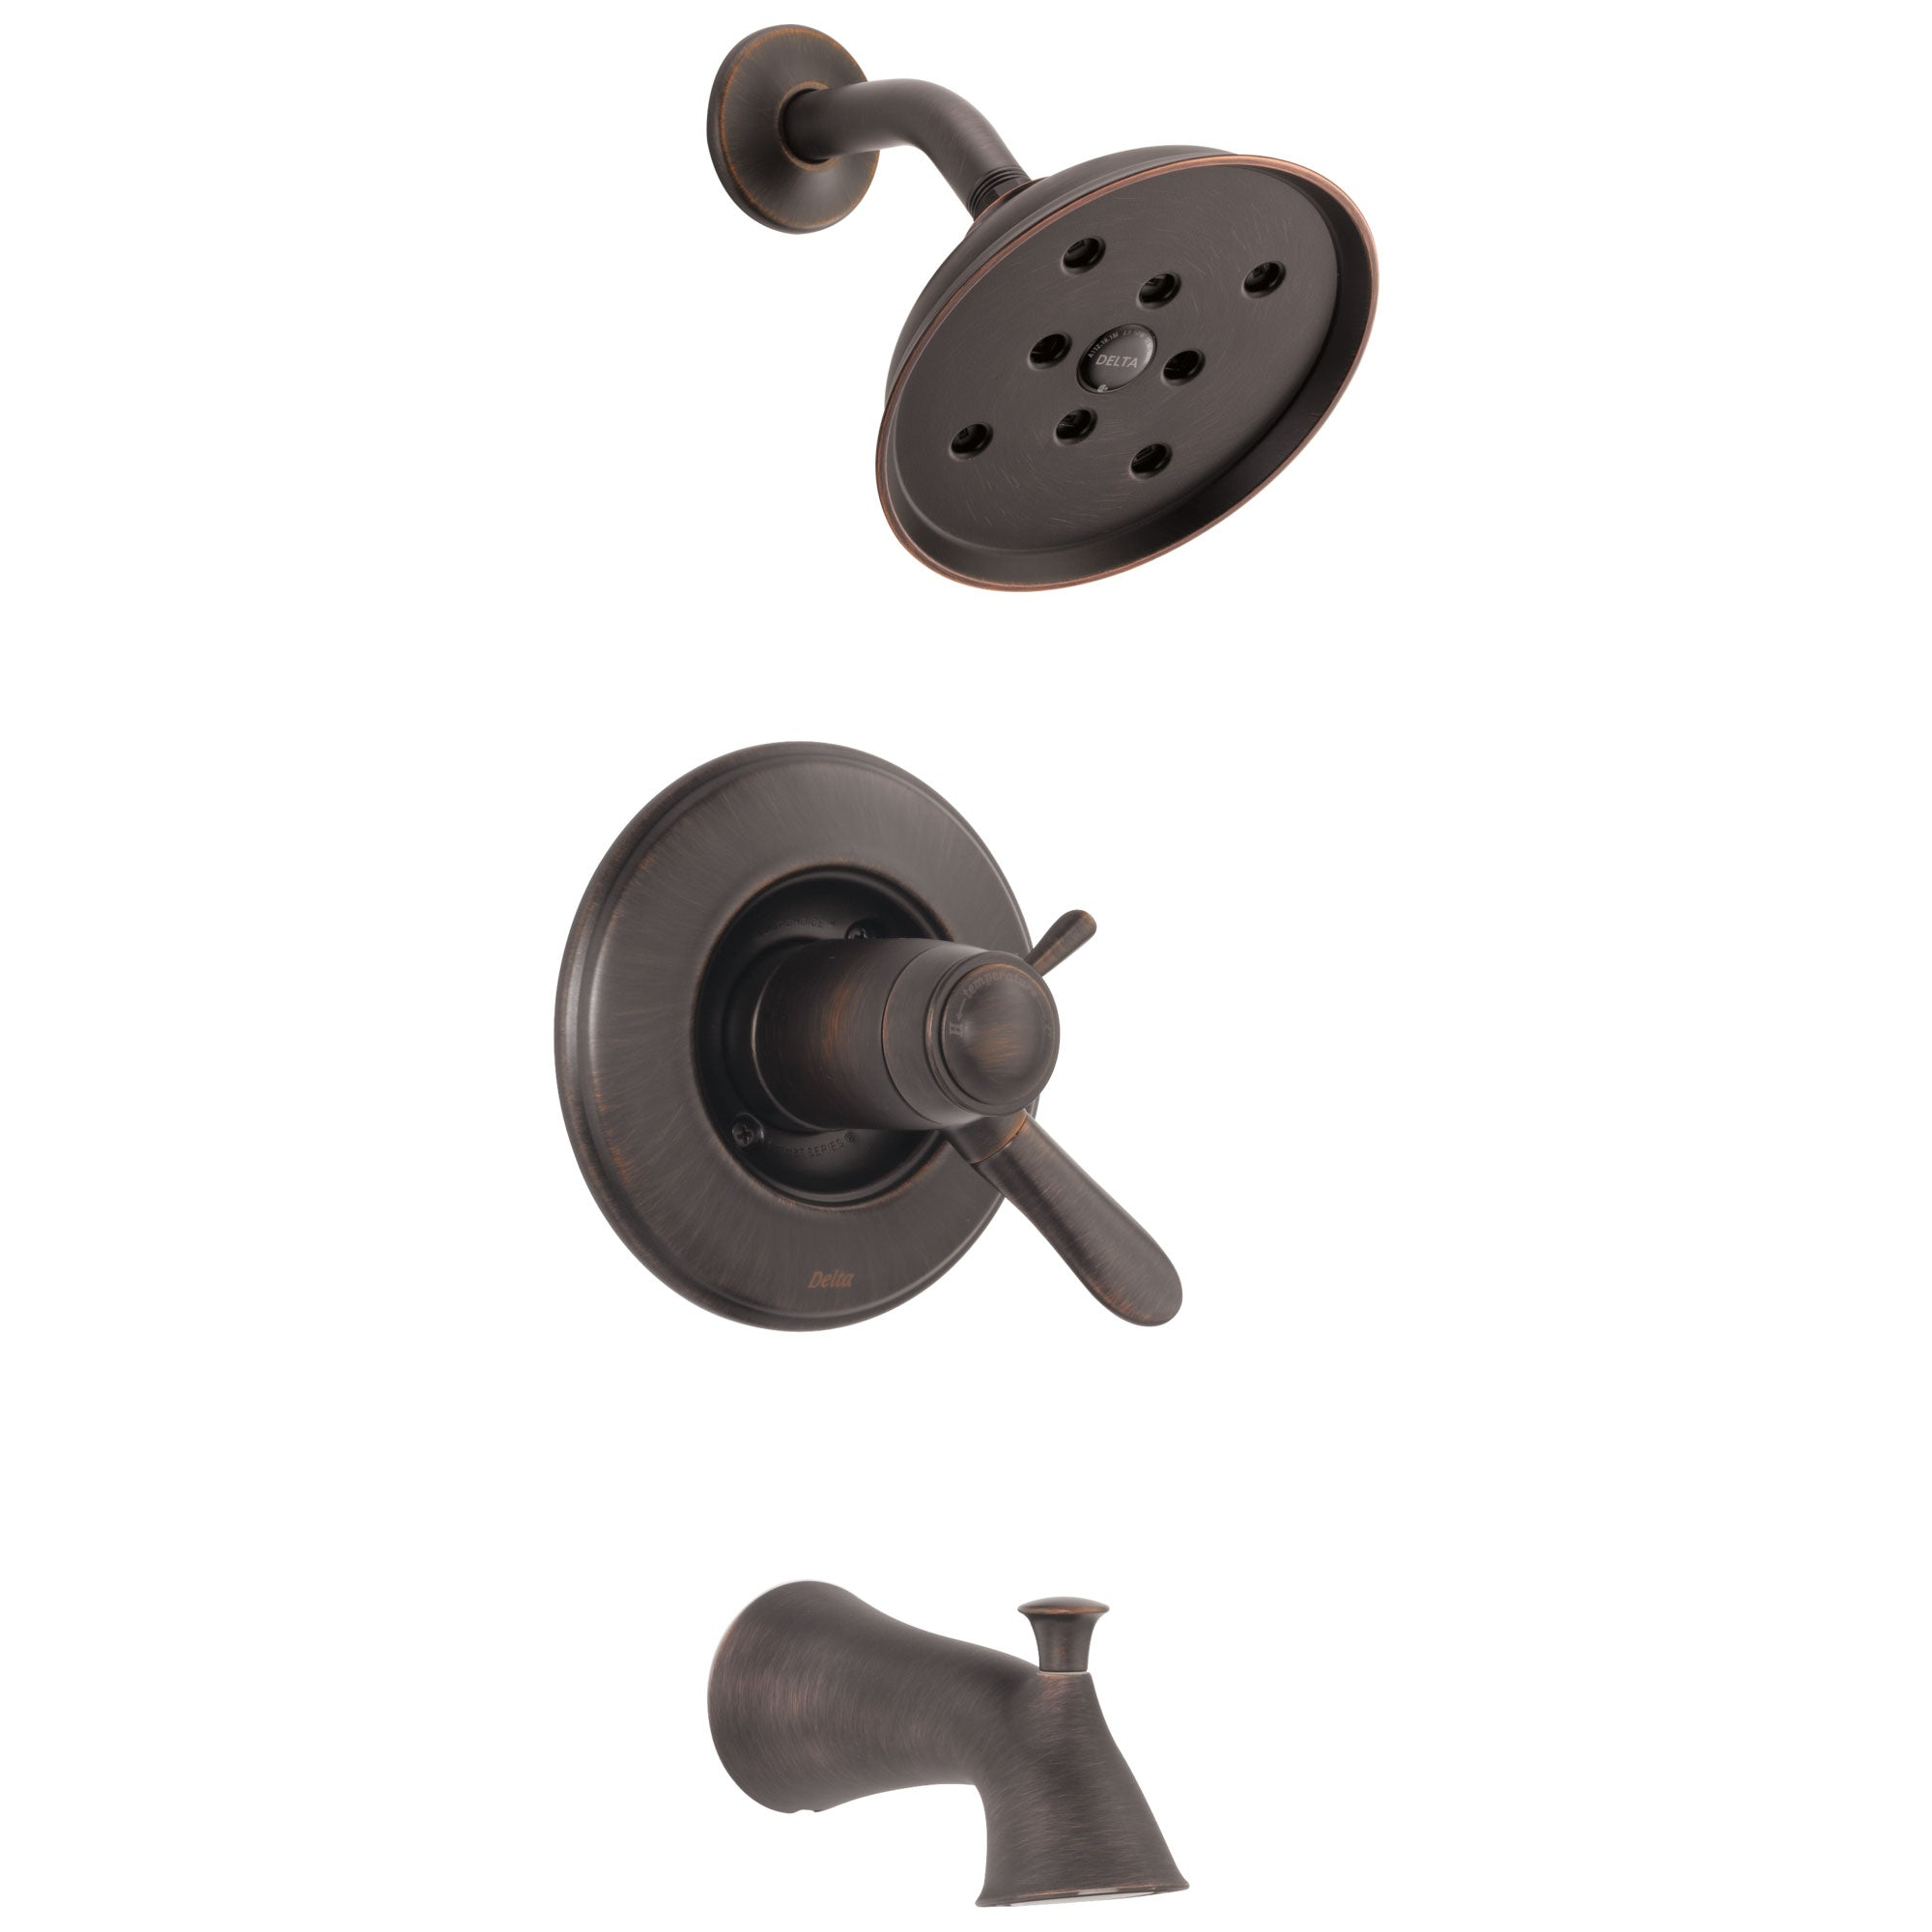 Delta Lahara Venetian Bronze Finish Monitor 17T Series Tub and Shower Faucet Combo Trim Kit (Requires Valve) DT17T438RBH2O